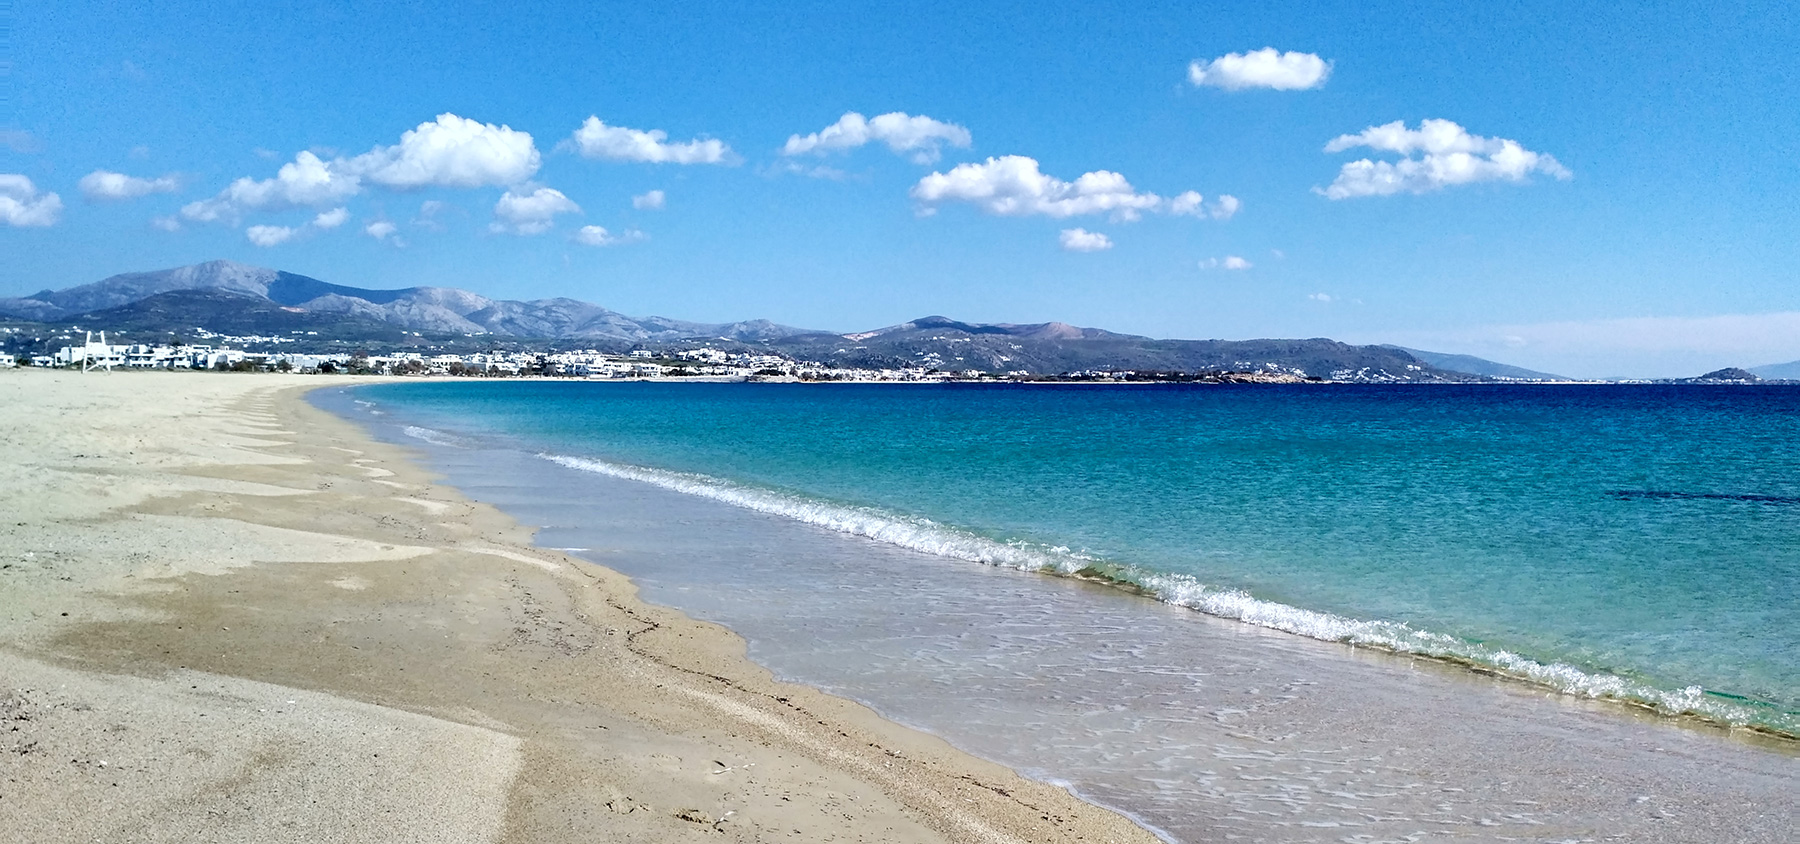 WALKING-PLUS-Agios-Prokopios-beach-Naxos